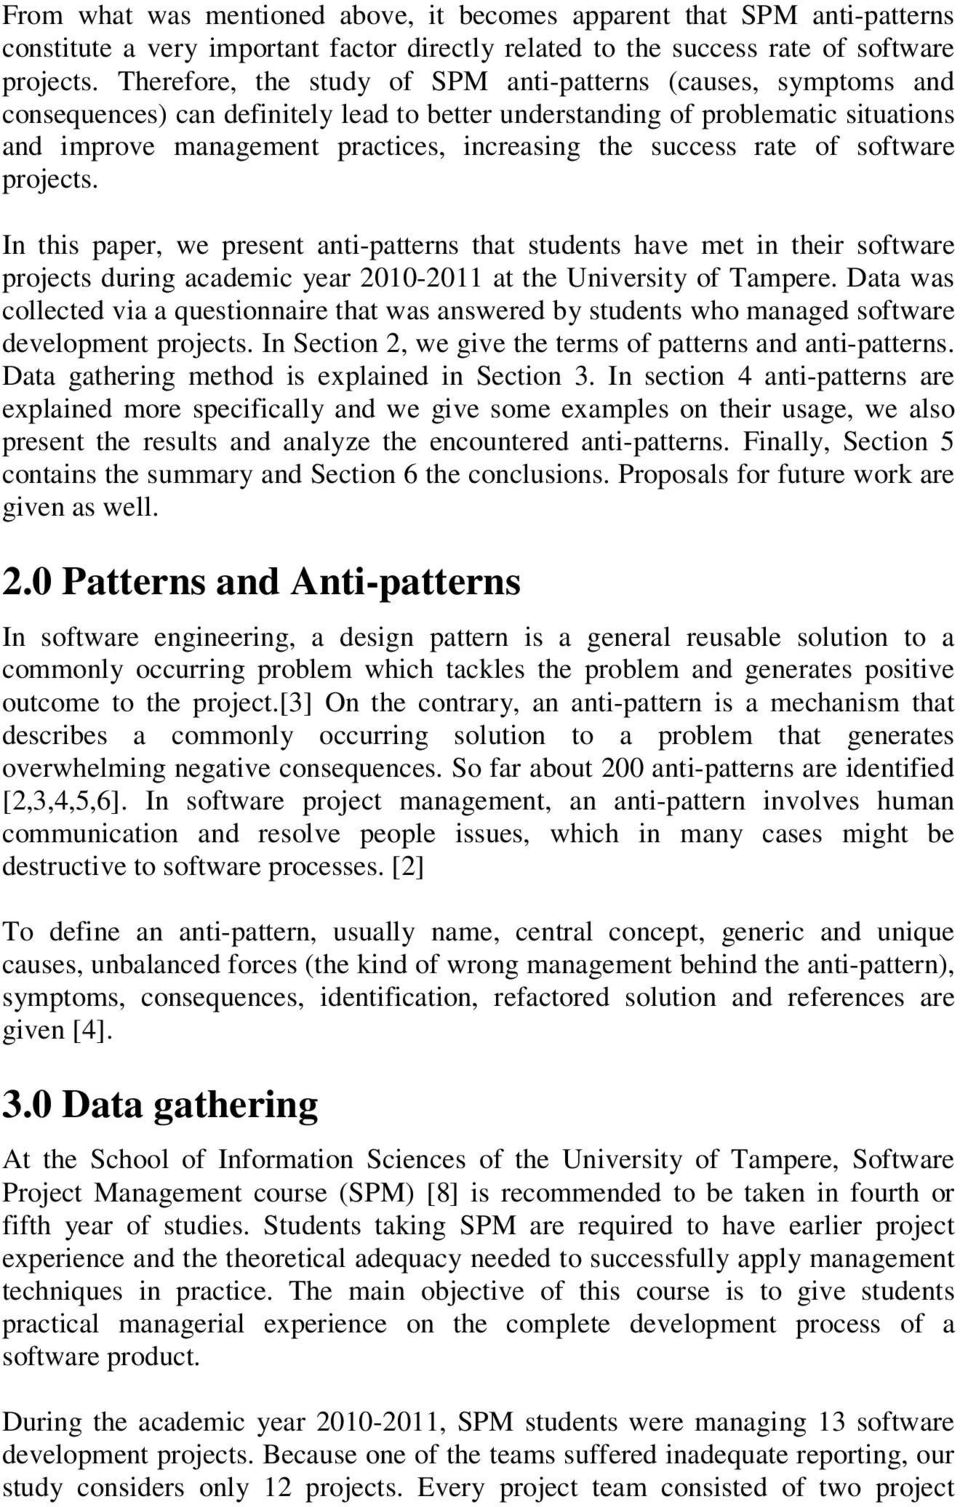 Antipatterns The Survival Guide Pdf